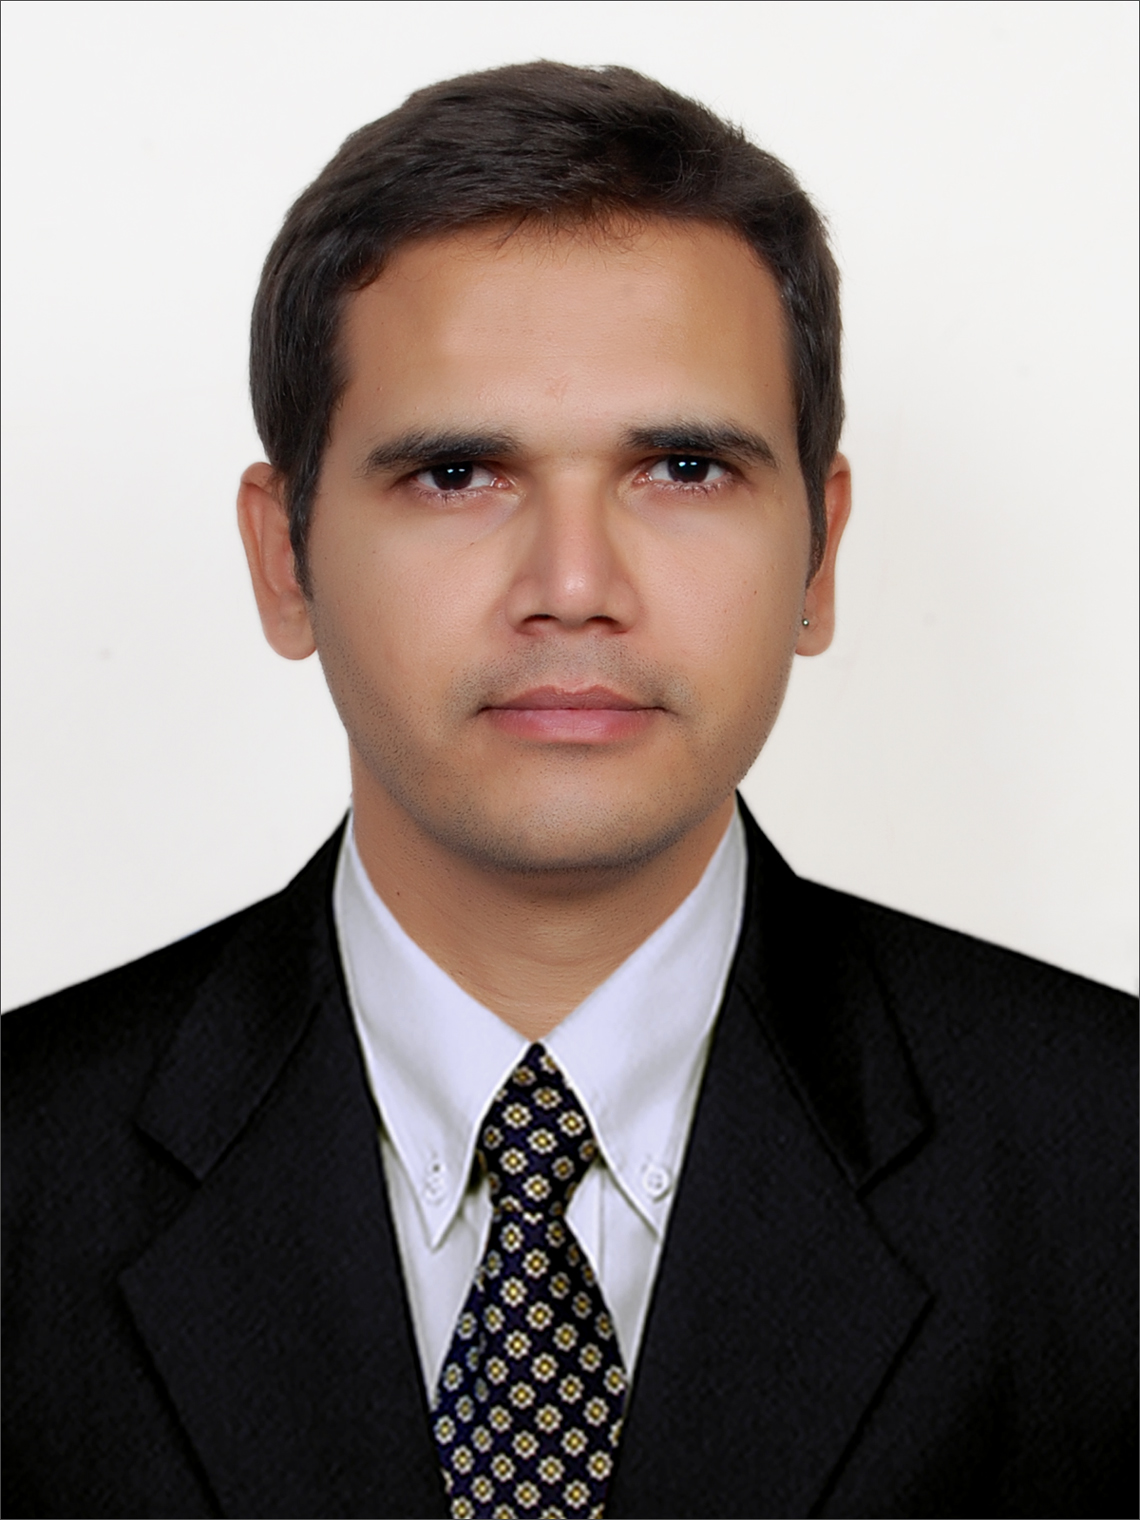 cv  indian document controller  9 years of experience looks globally